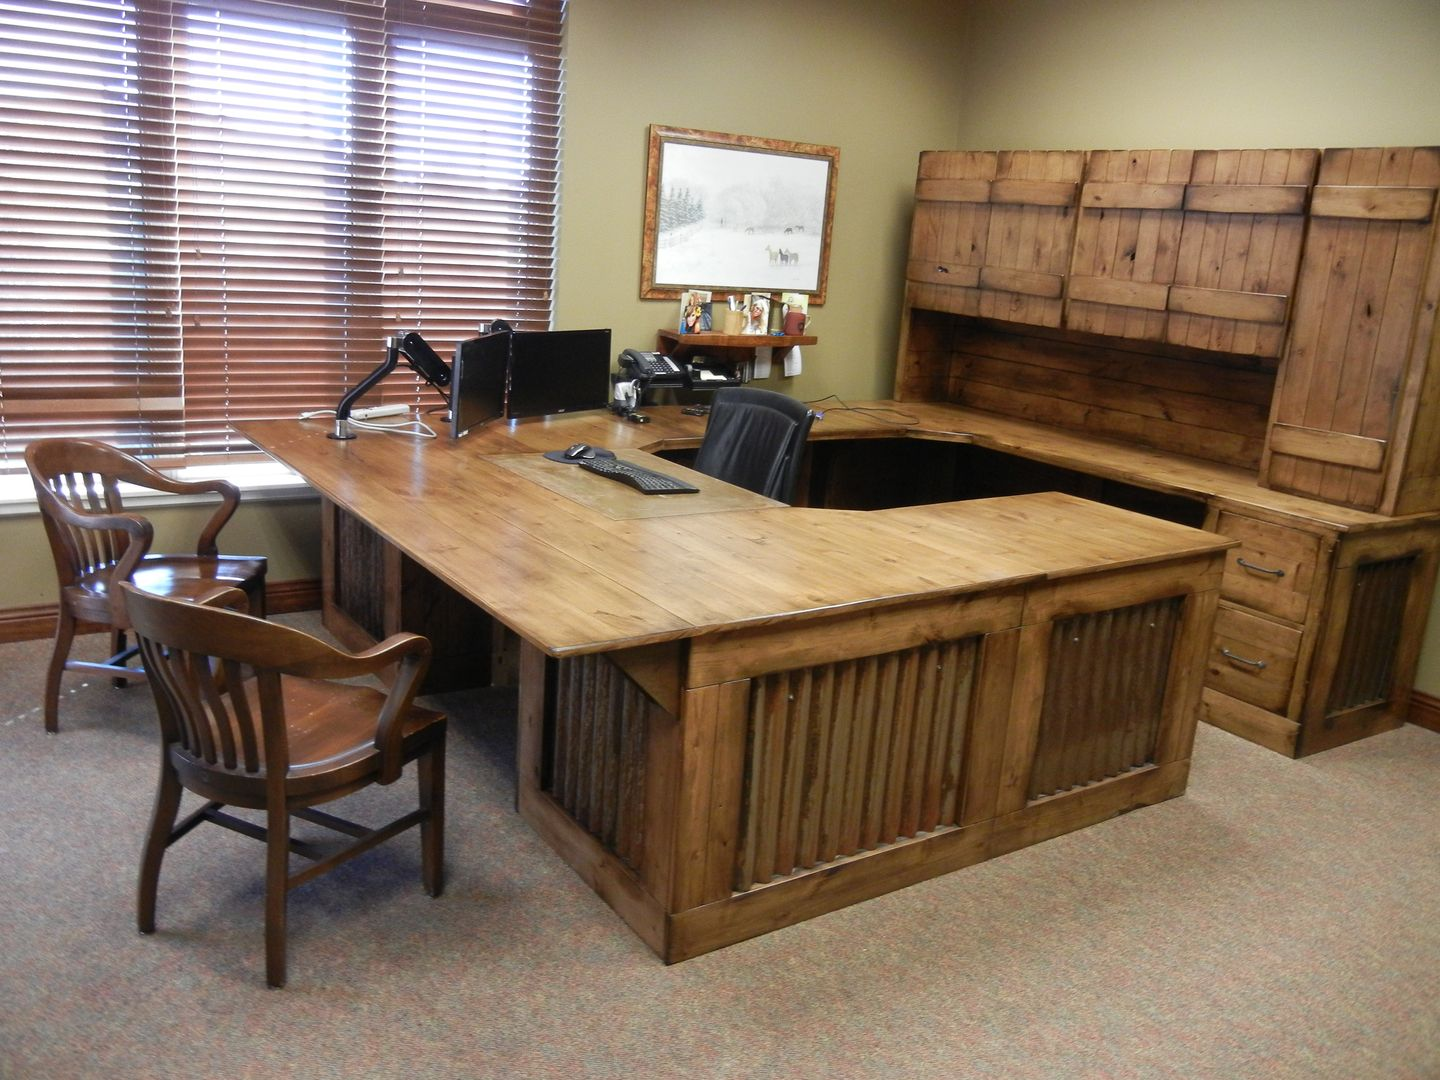 84 rustic office furniture okc 498 best decor ideas images on pinterest okc moreover Home outlet furniture in okc